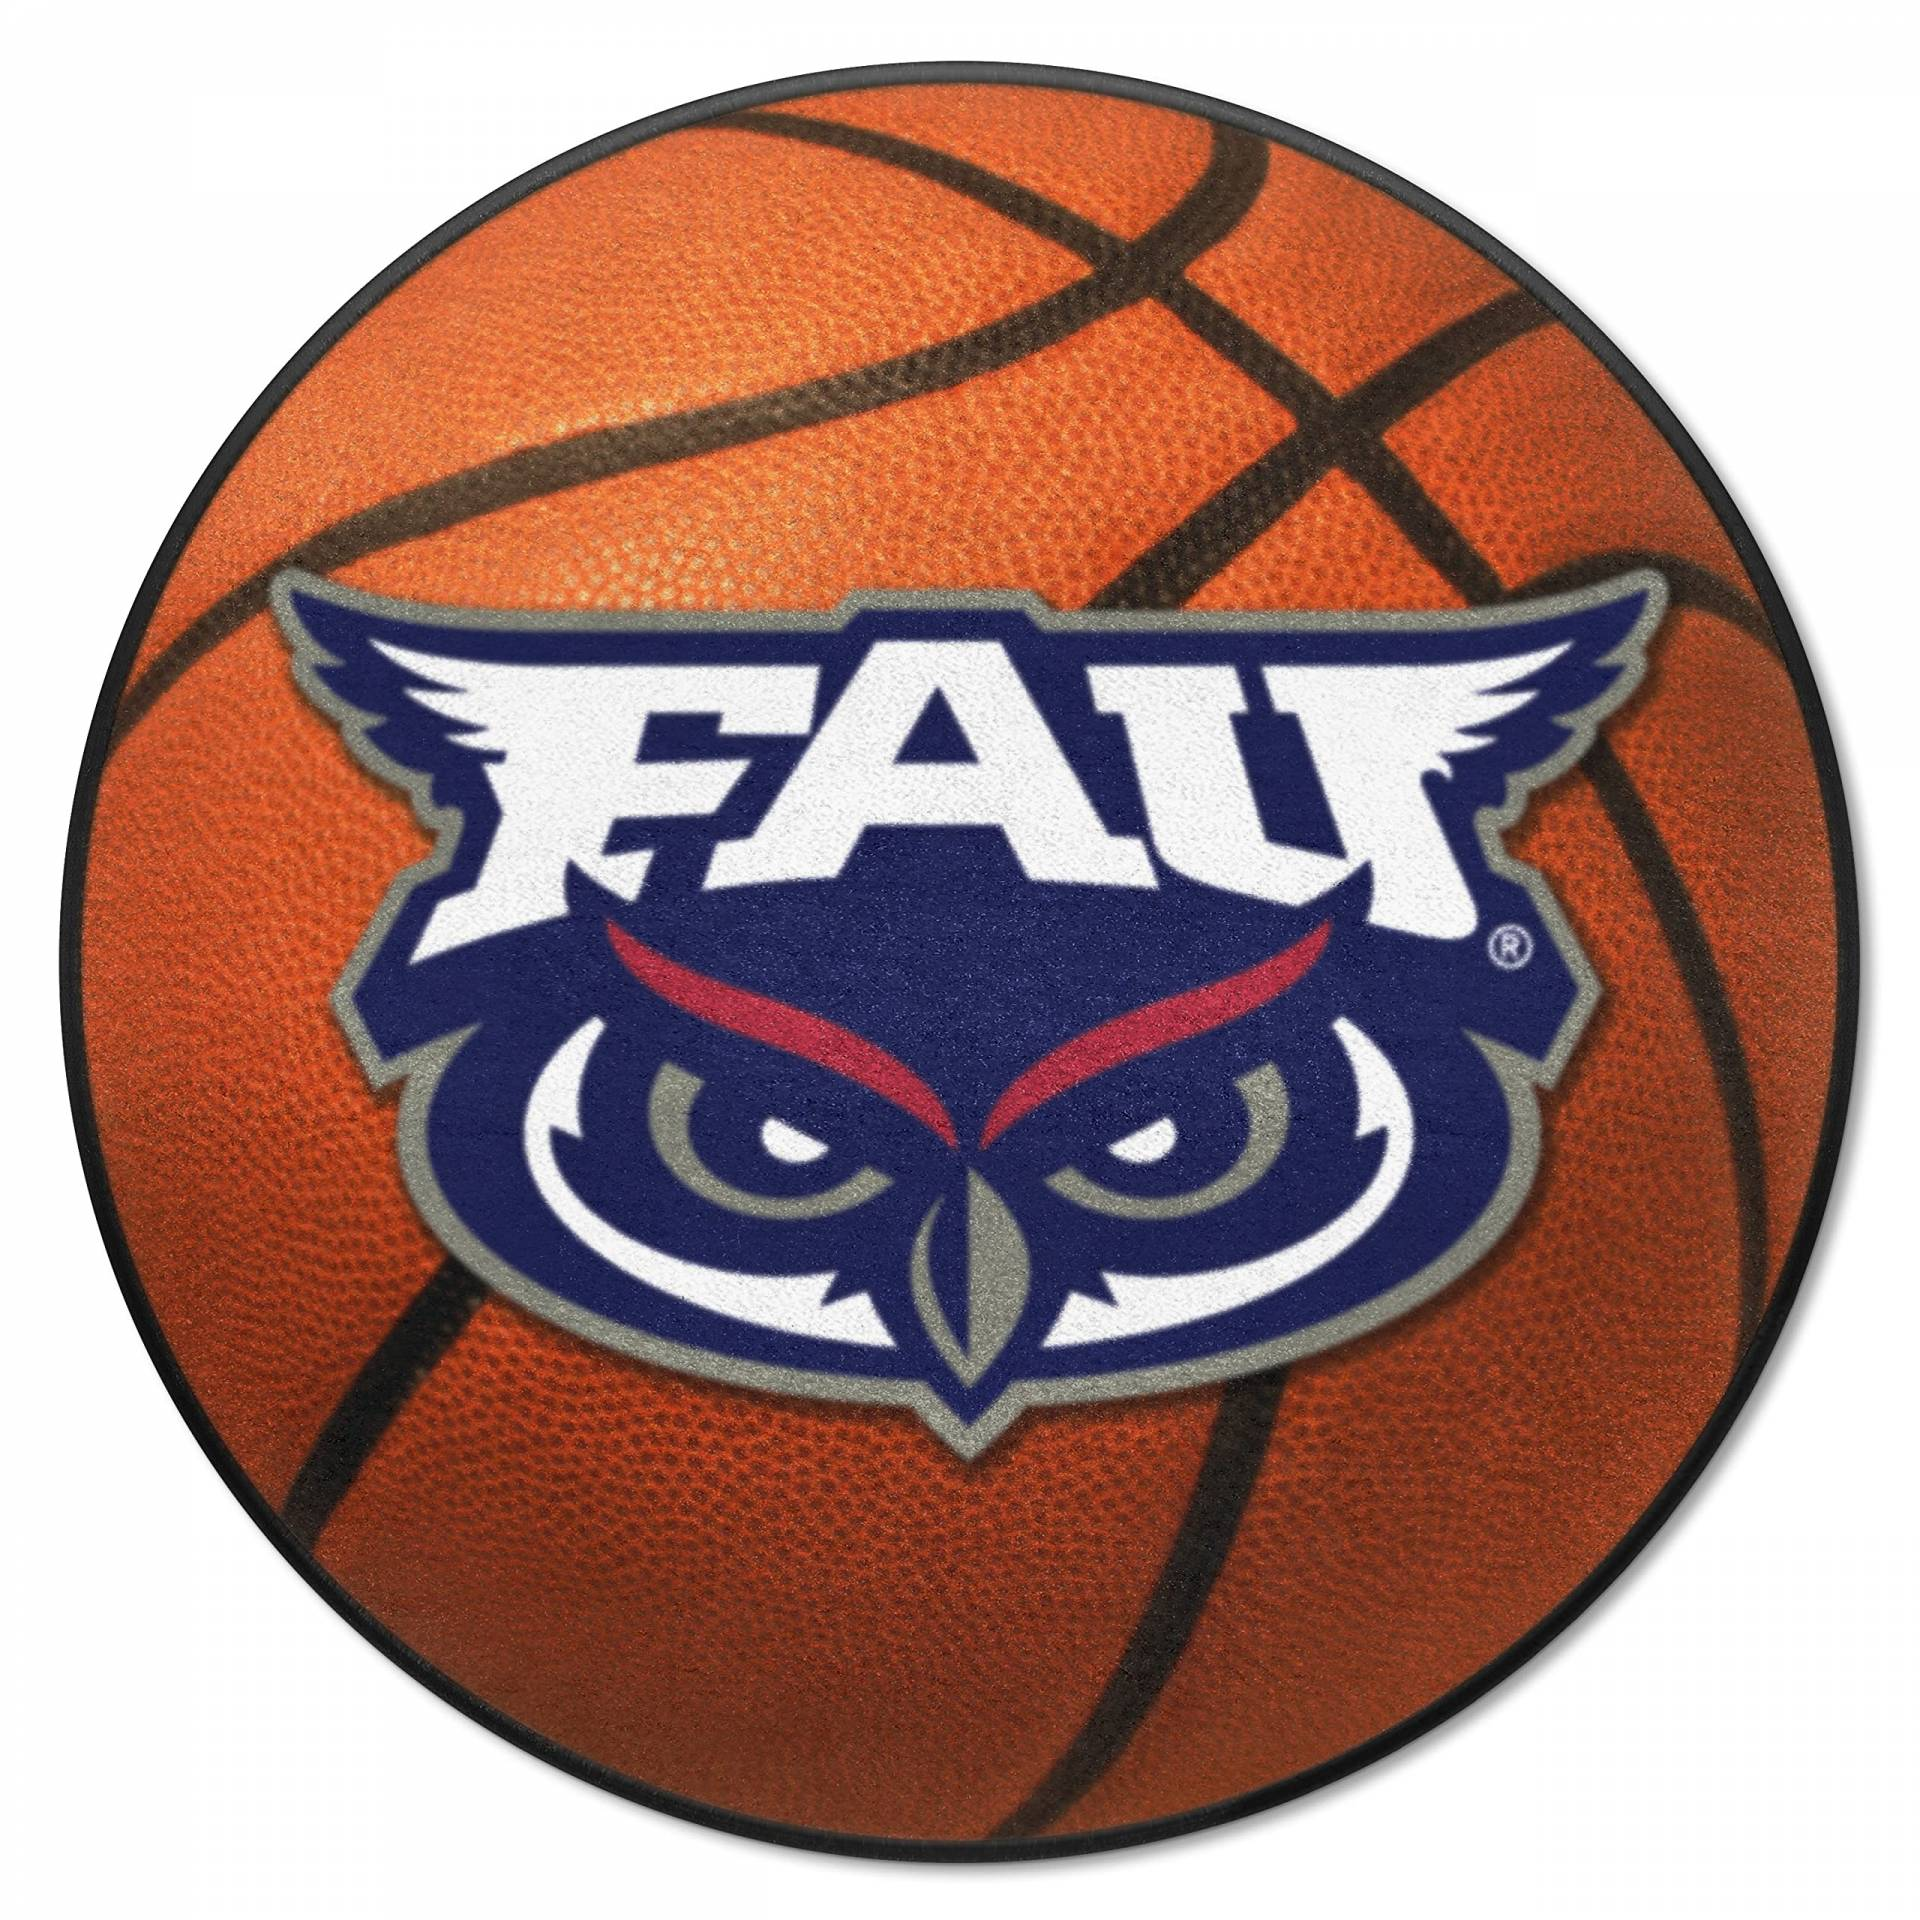 FANMATS NCAA Florida Atlantic University Eulen Nylon Gesicht Basketball Teppich von FANMATS